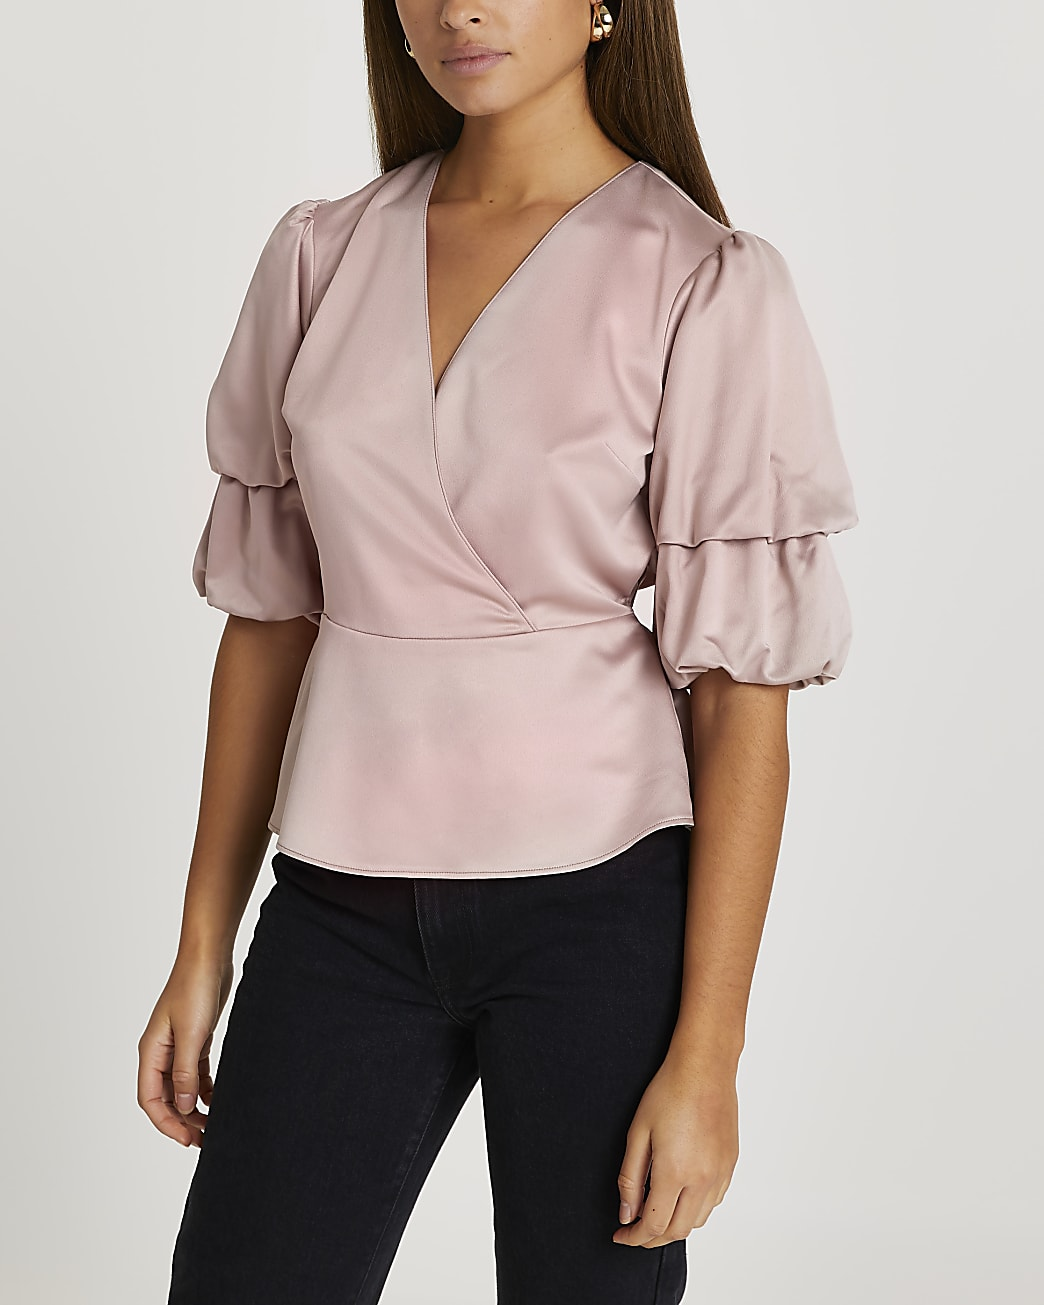 Pink double puff sleeve blouse top